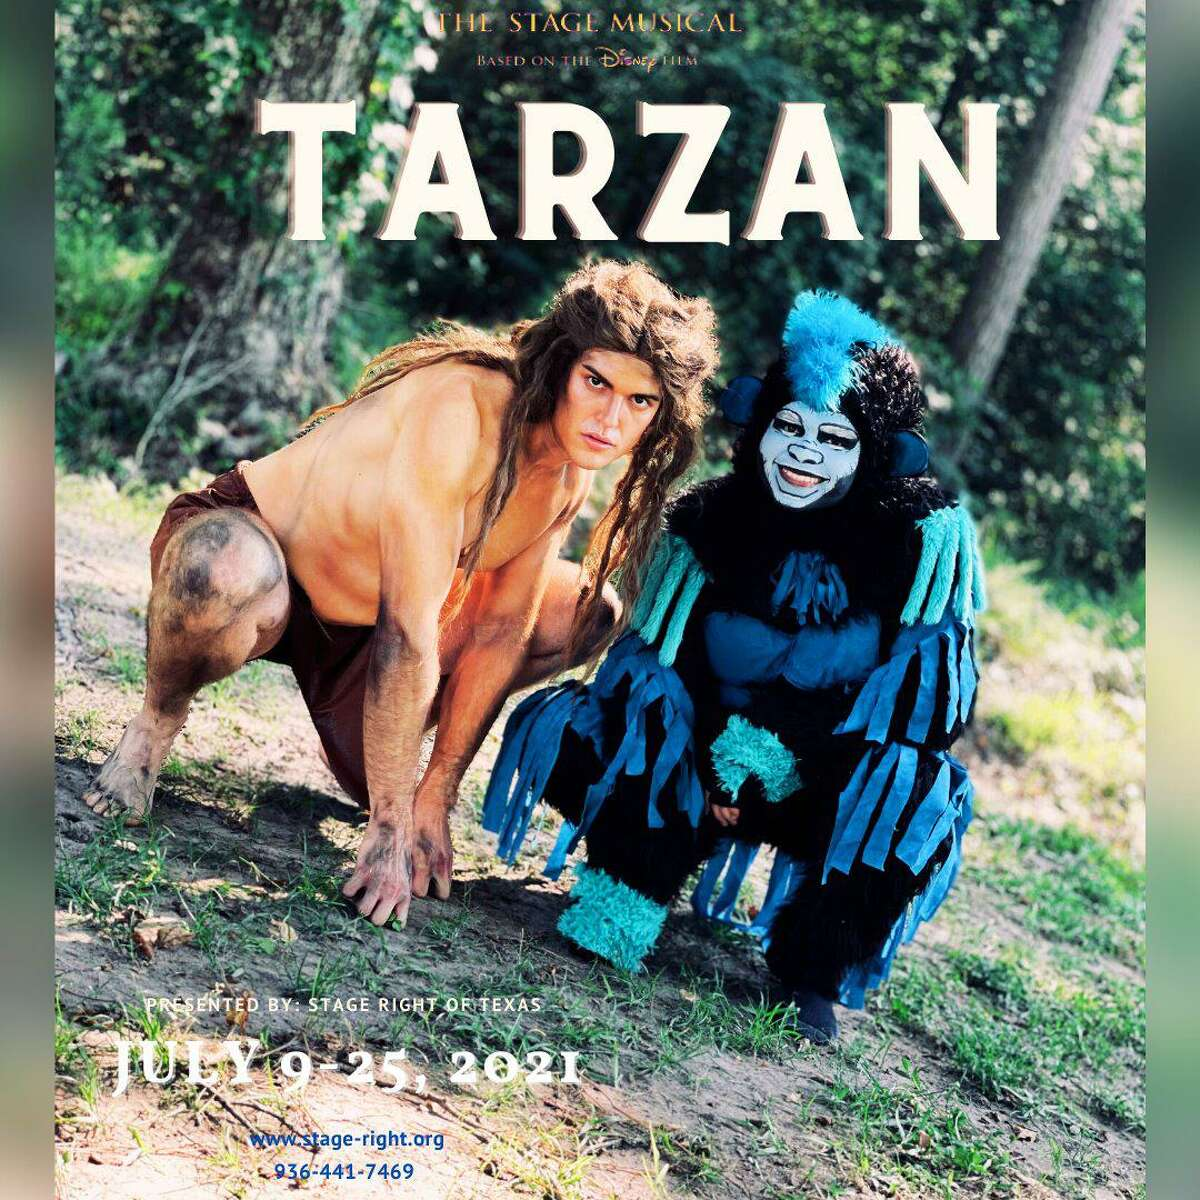 """Stage Right of Texas presents """"Tarzan"""" opening July 9 at the Crighton Theatre. Pictured are Lucas Olivarez as Tarzan and Jonah Mendoza as Terk."""